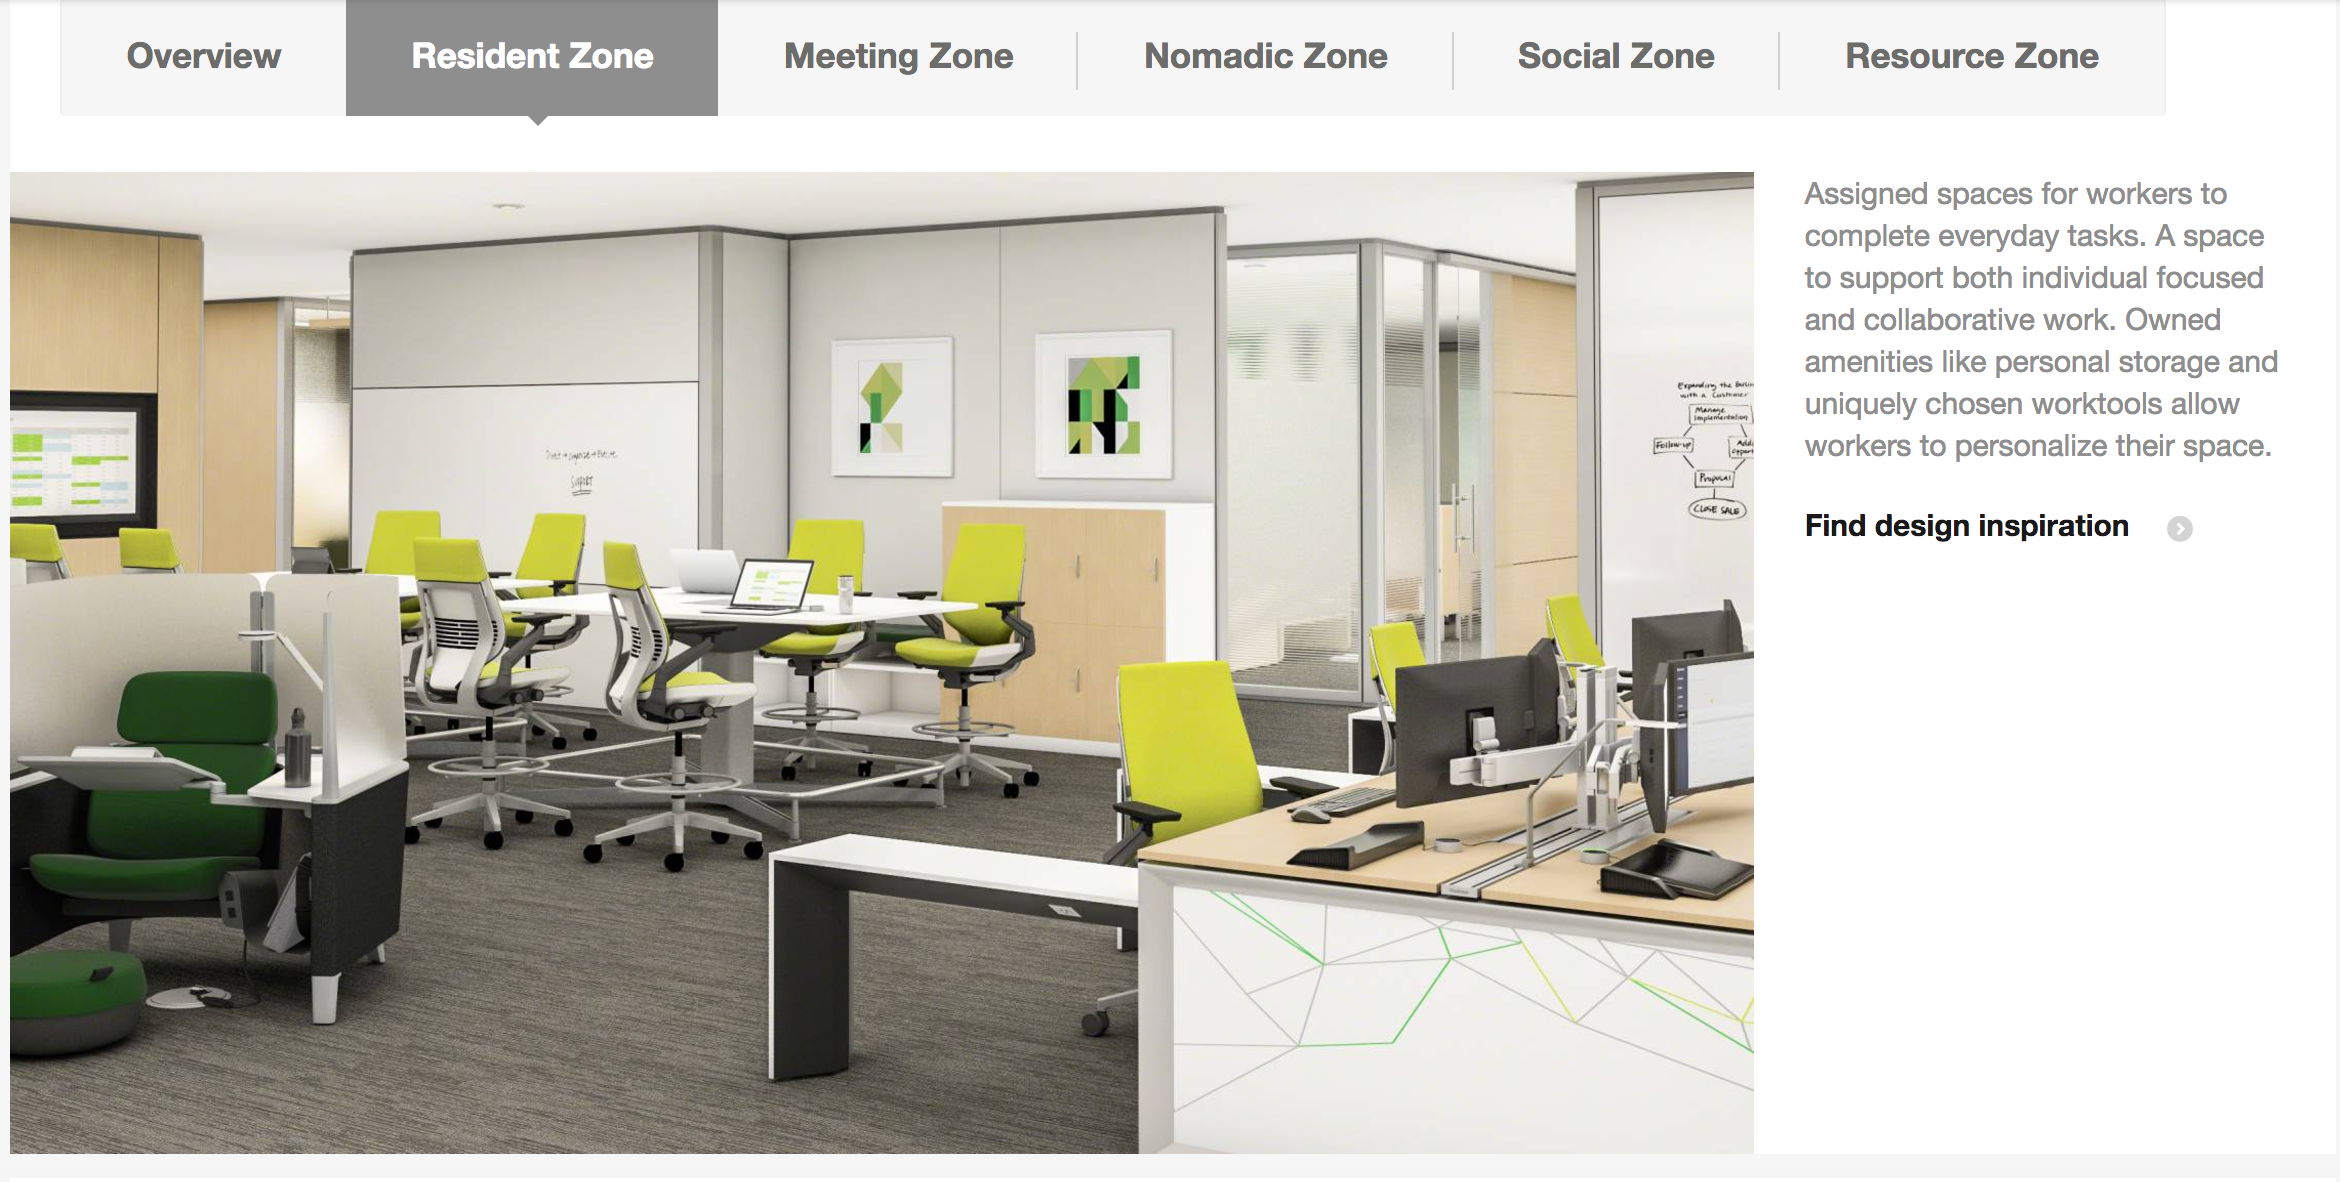 design office space dwelling. Resident Zone - Assigned Spaces For Workers To Complete Everyday Tasks. A Space Support Both Individual Focused And Collaborative Work. Design Office Dwelling D